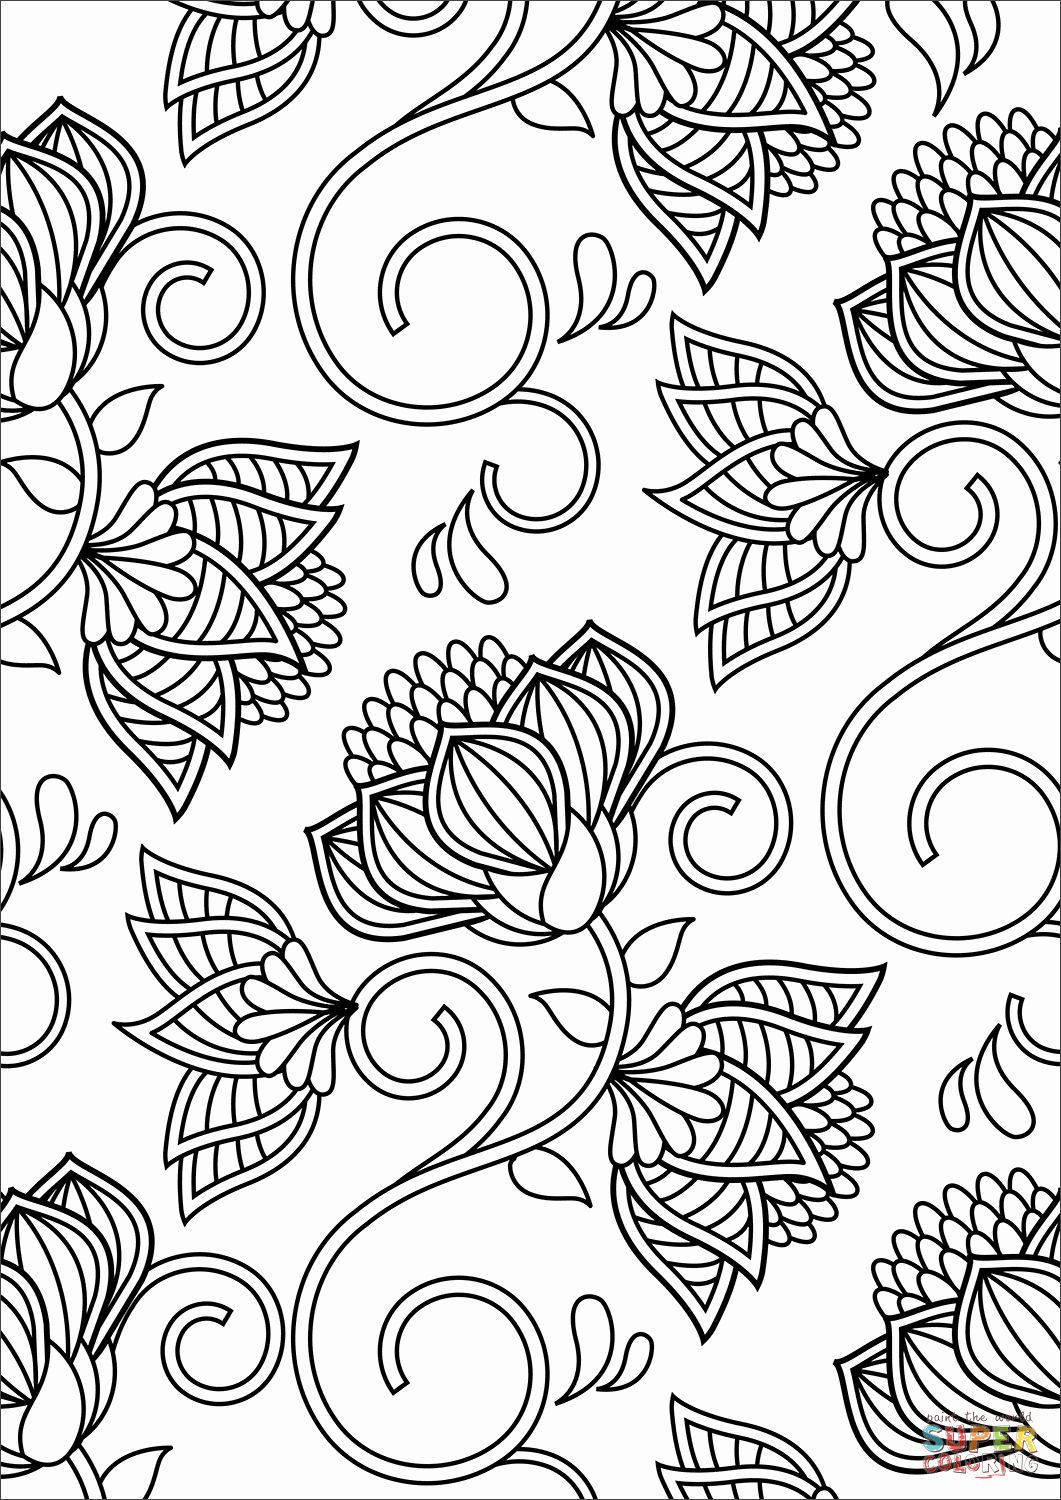 Patterned Coloring Pages For Adults Inspirational Lotus